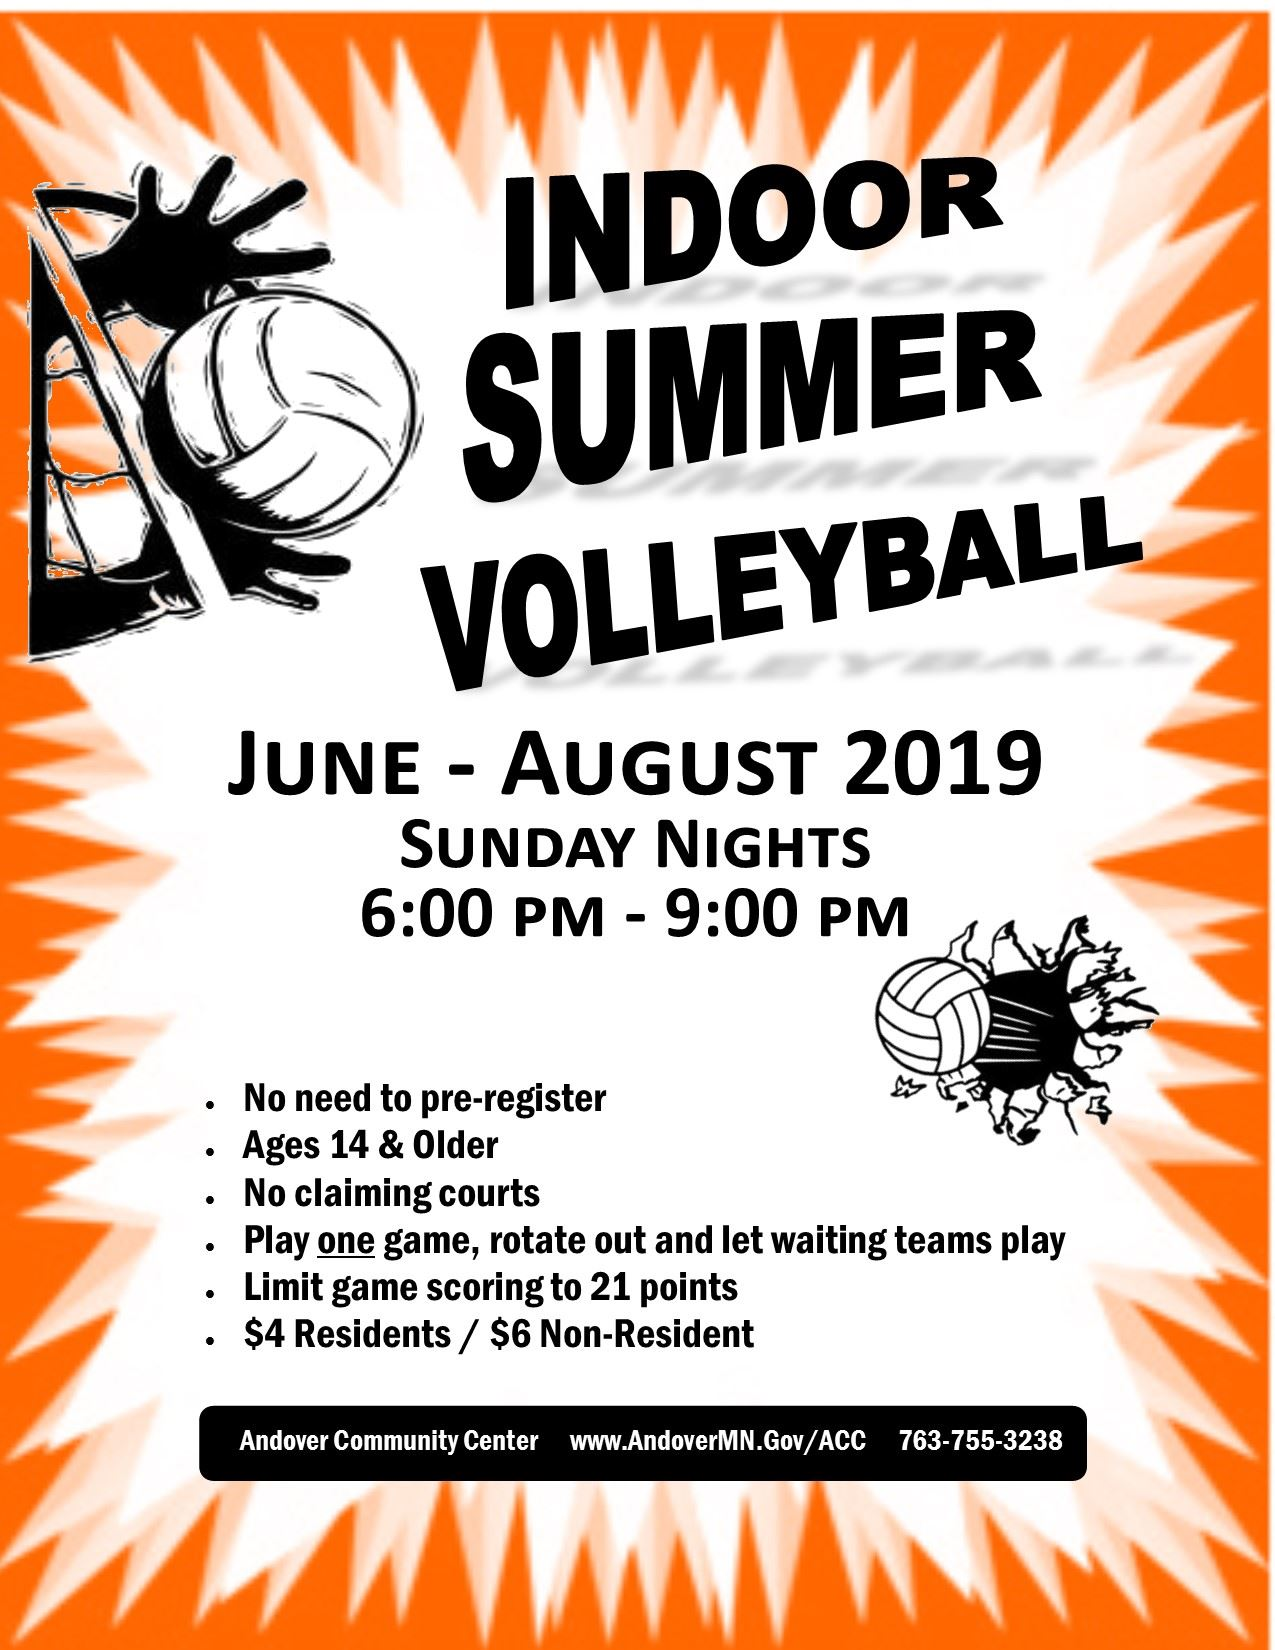 volleyball flyer 2019 Summer